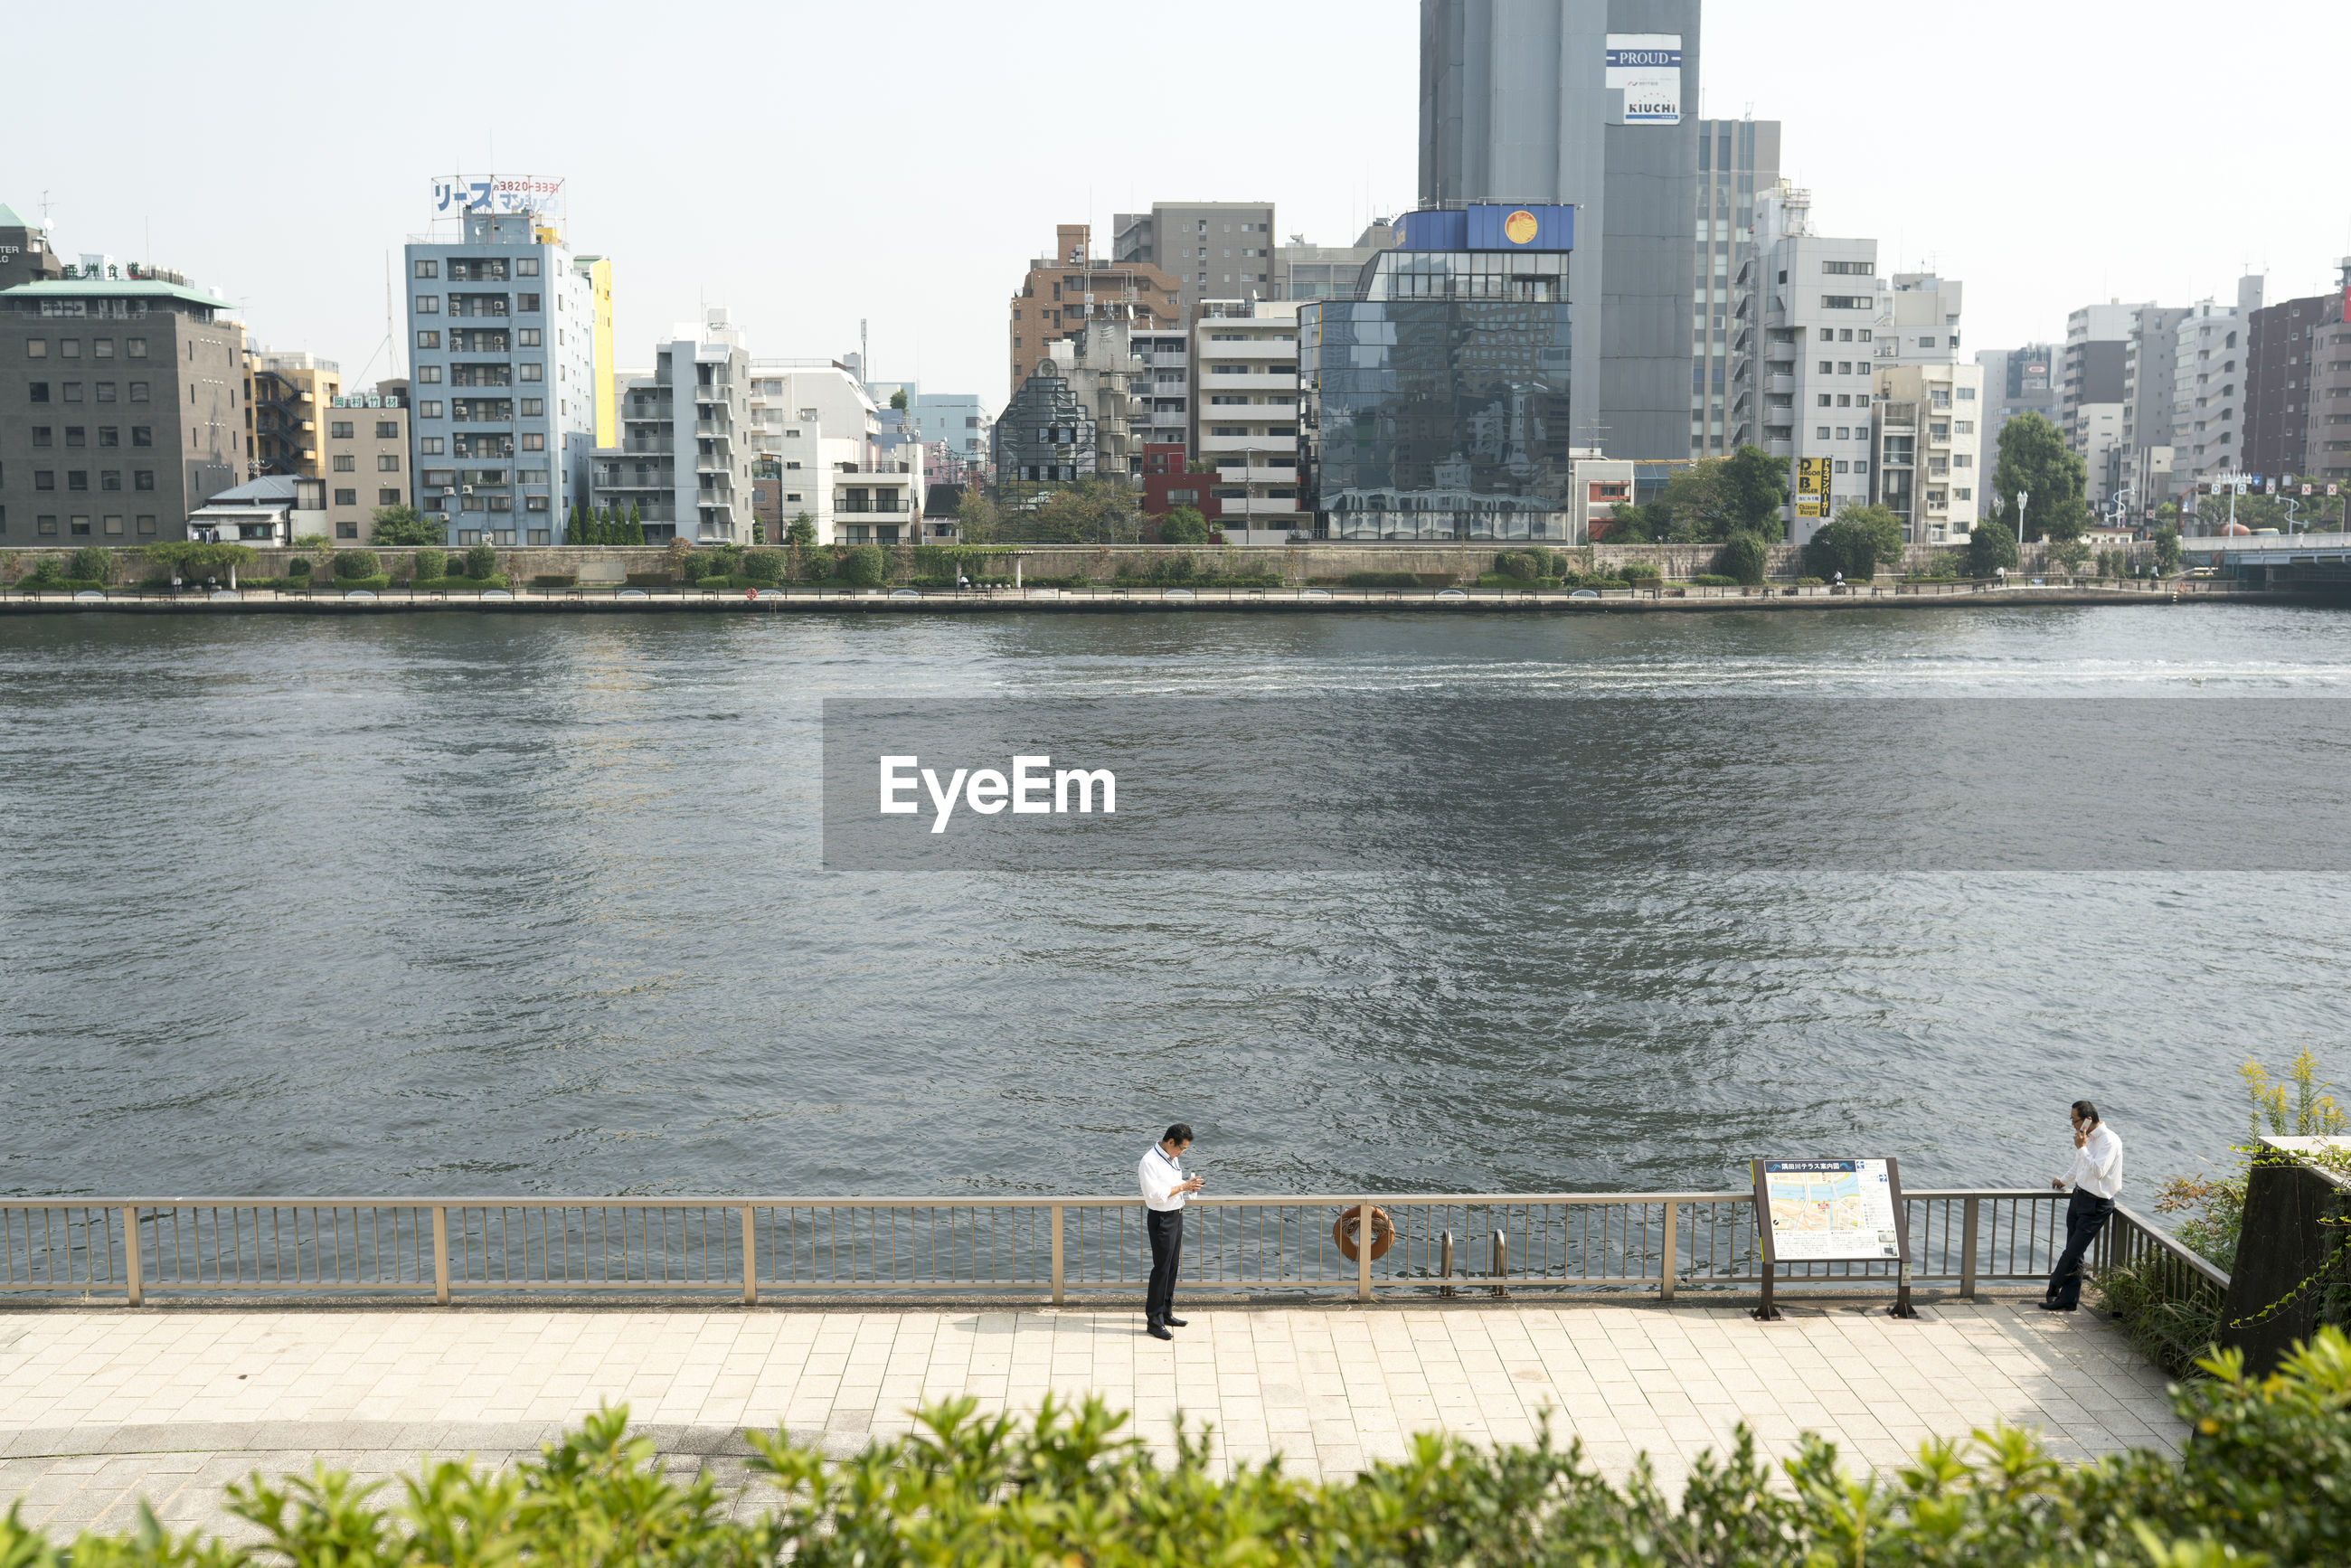 REAR VIEW OF MAN STANDING BY RIVER AGAINST BUILDINGS